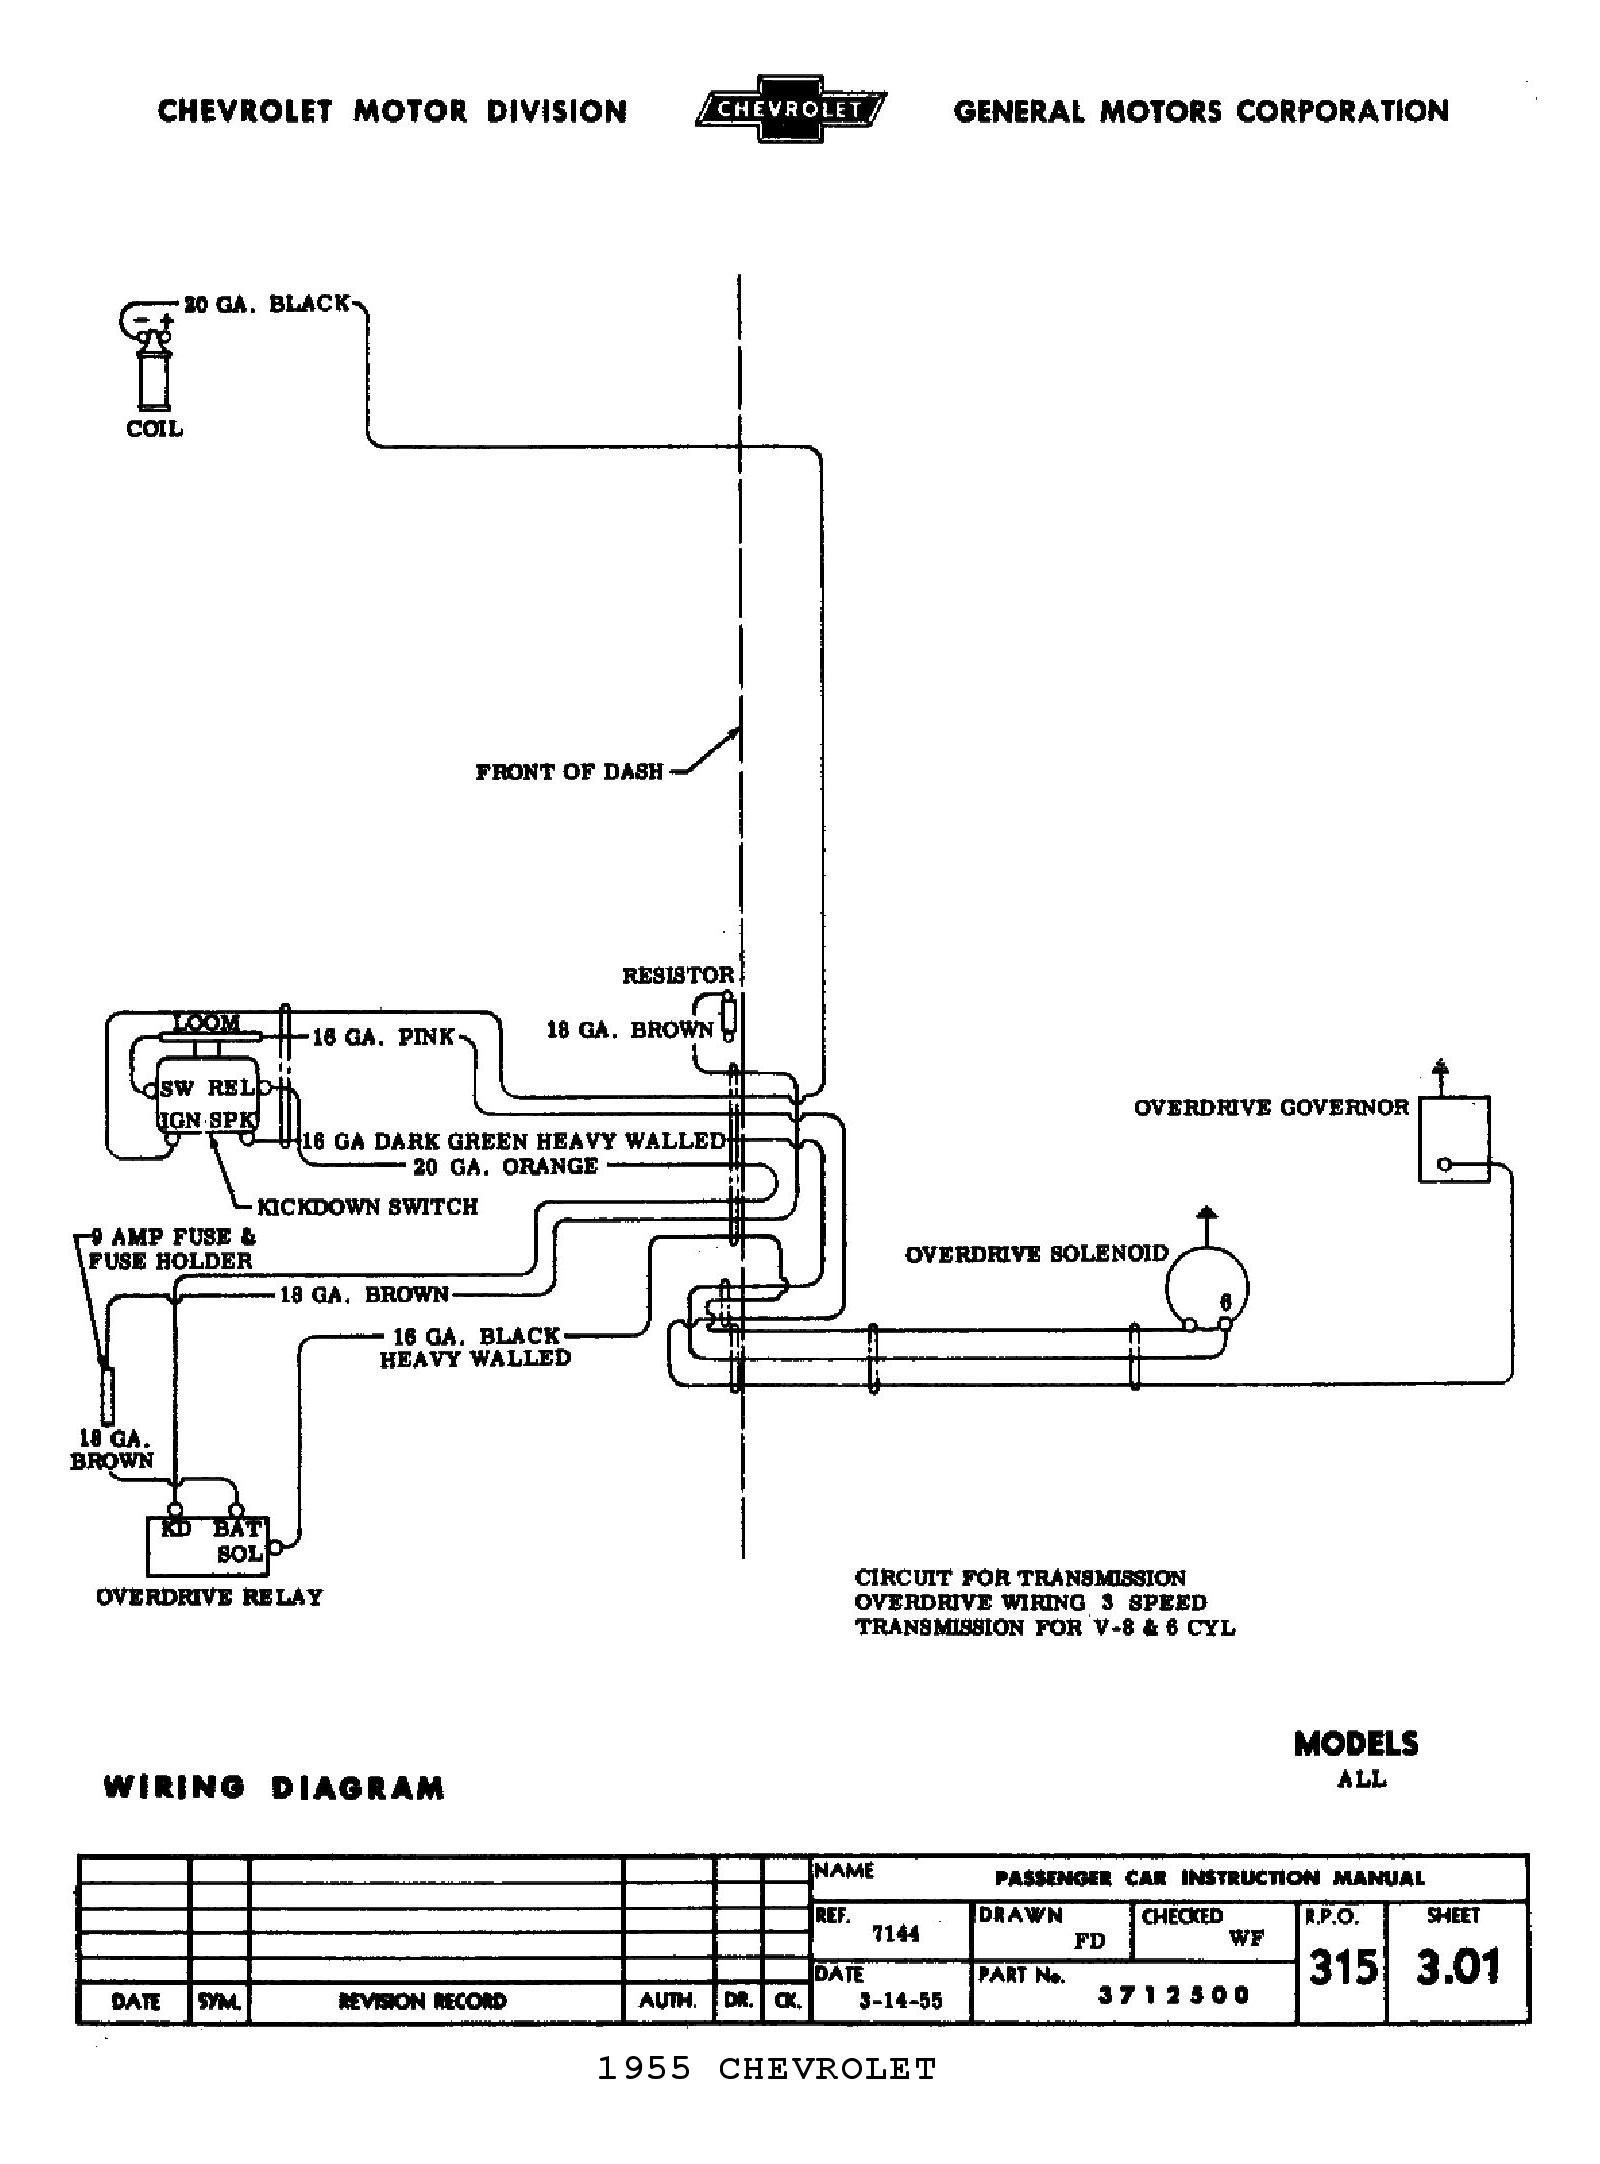 S10 Ignition Switch Wiring Diagram | Wiring Diagram Image on s10 driveshaft diagram, s10 engine diagram, s10 ignition parts, s10 lighting wiring diagram, 1993 s10 wiring diagram, 93 s10 wiring diagram, s10 fuel diagram, 1987 f150 wiring diagram, 1988 s10 wiring diagram, s10 ignition timing, s10 starter wiring, s10 wiring diagram for gauges, s10 wiring harness diagram, 96 s10 wiring diagram, s10 headlight diagram, s10 wiring diagram pdf, s10 trailer wiring diagram, 87 s10 wiring diagram, s10 radio wiring diagram, 1985 s10 wiring diagram,